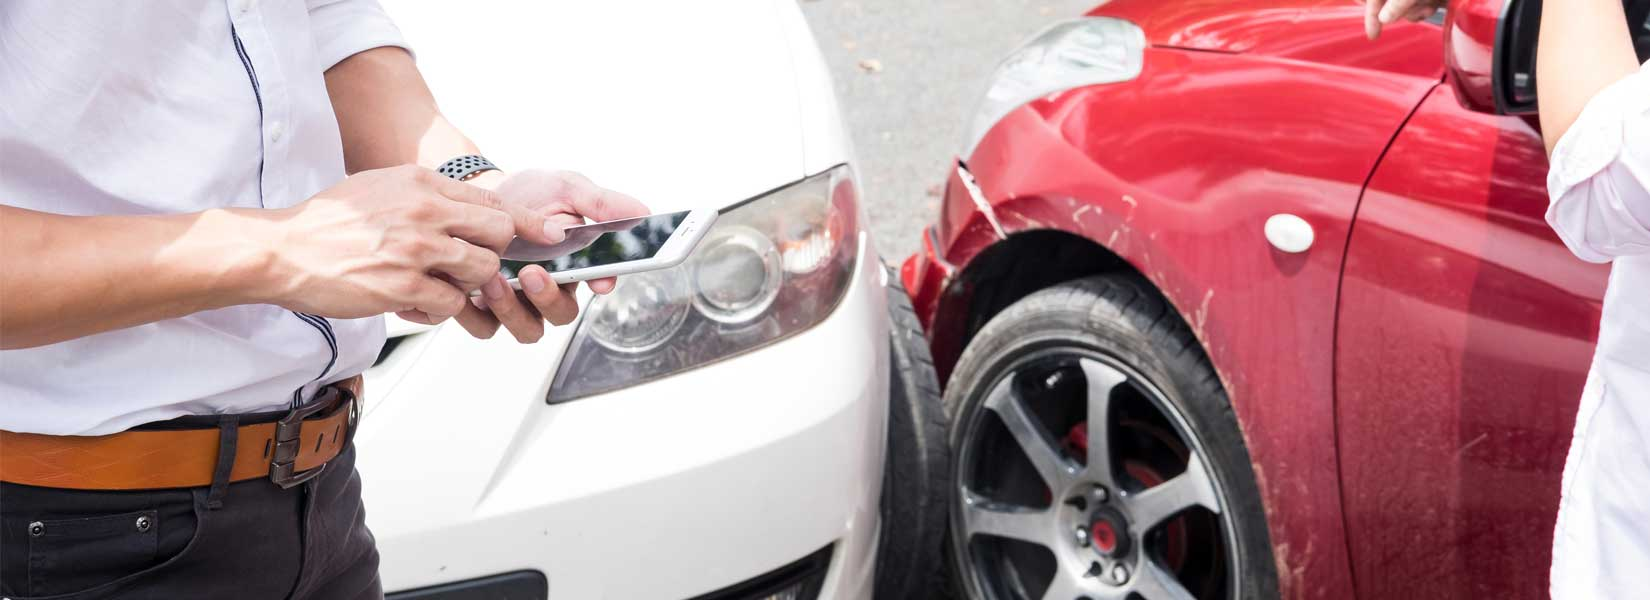 using phone after car collision